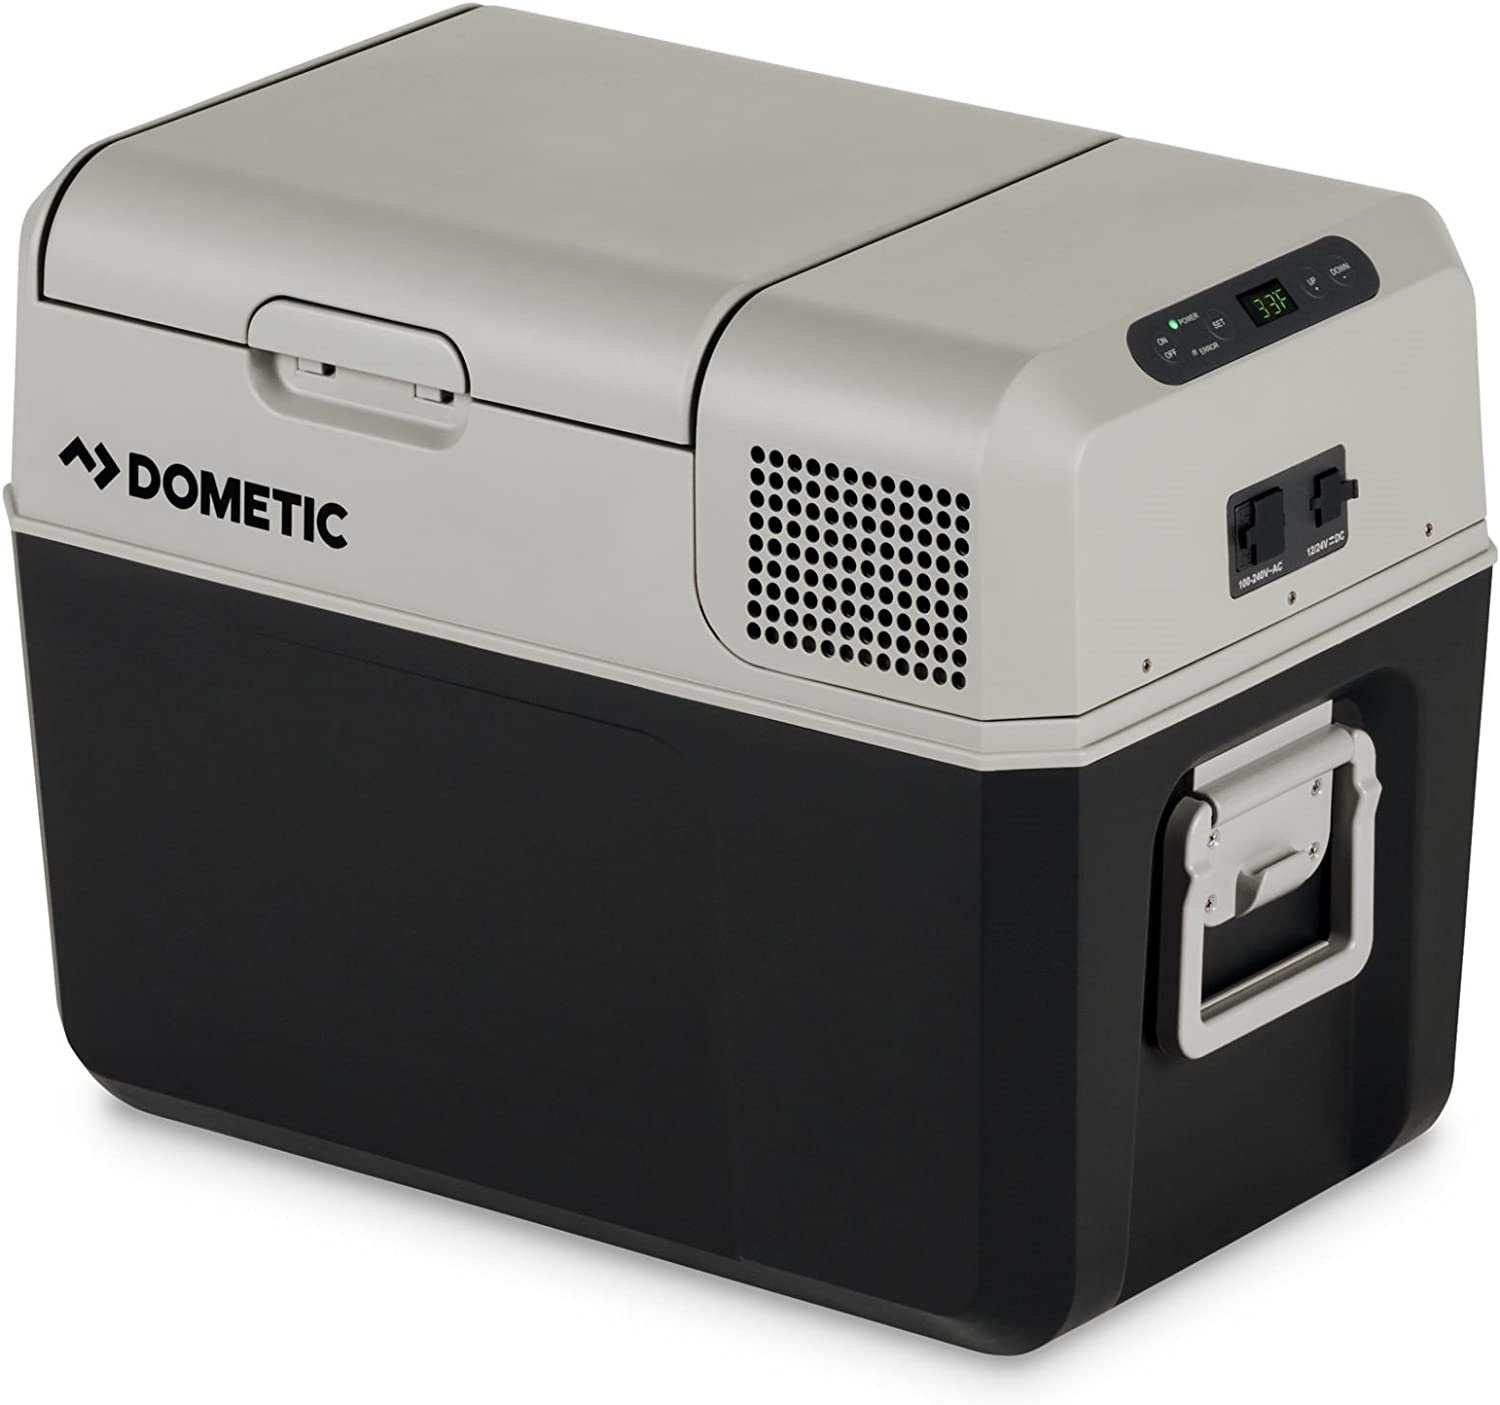 DOMETIC AC/DC Best Portable Camping Fridge.